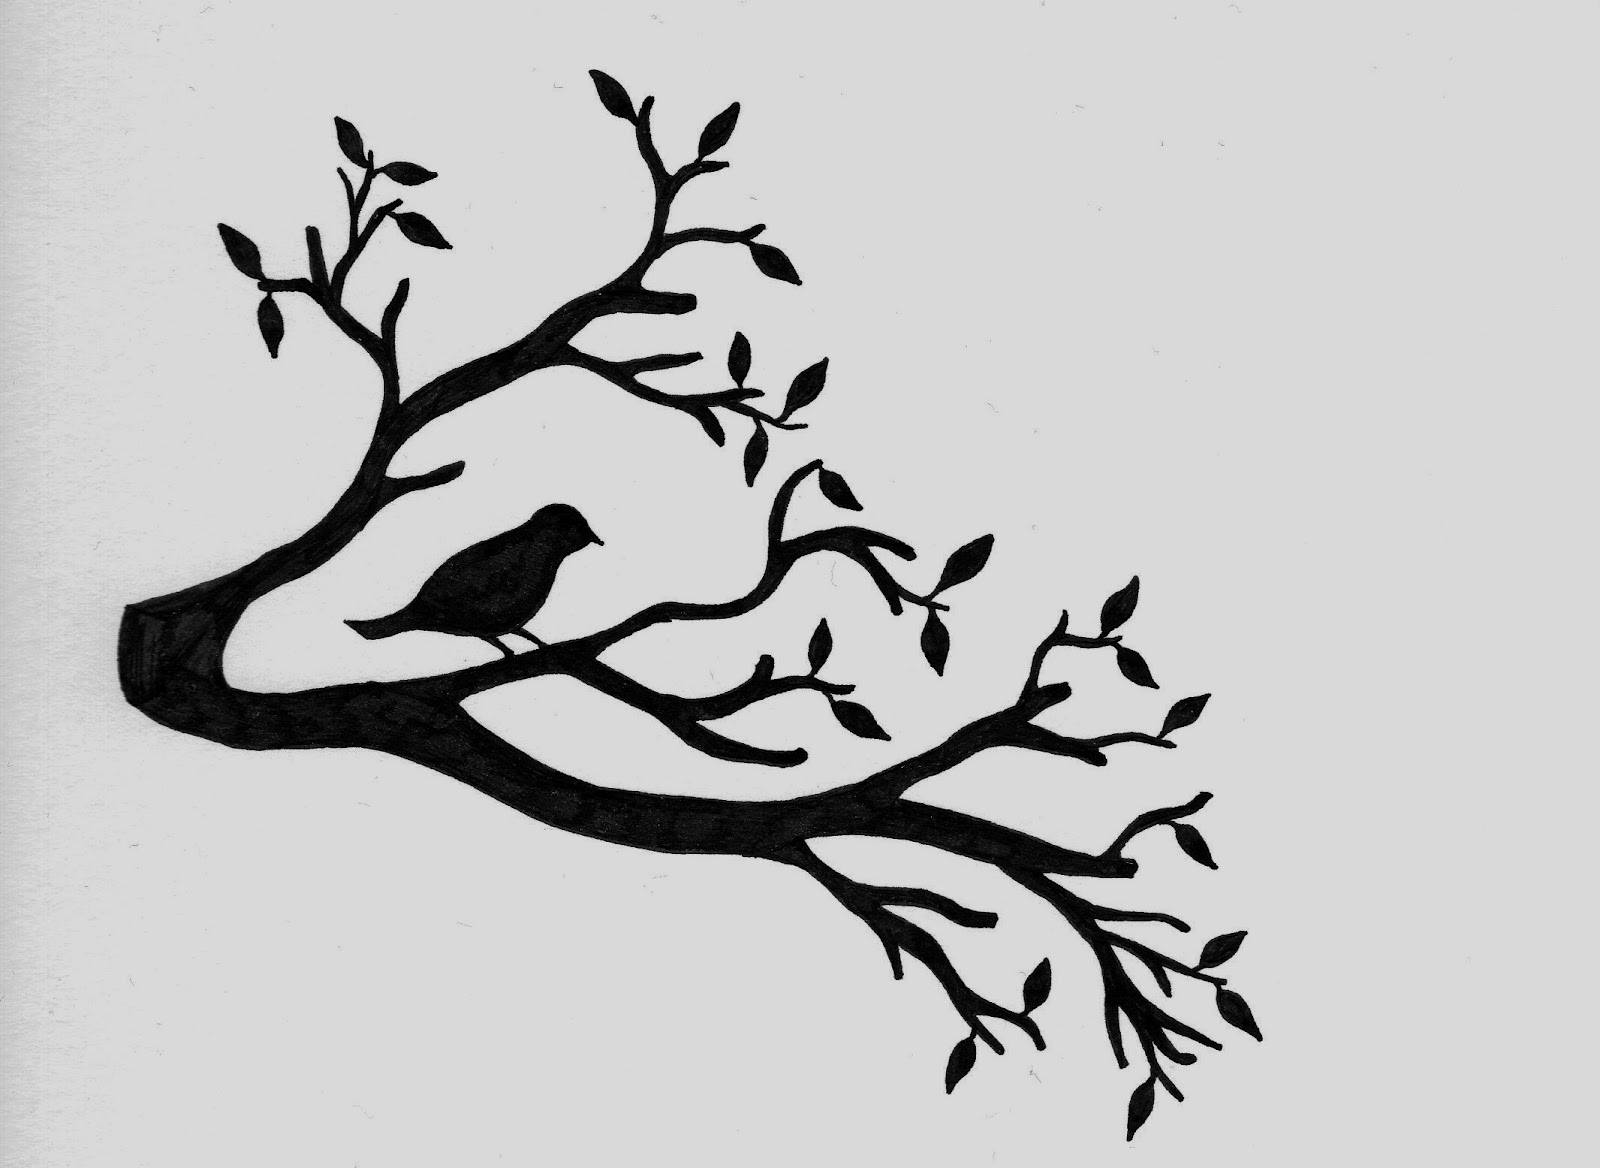 Tree Bird Silhouette